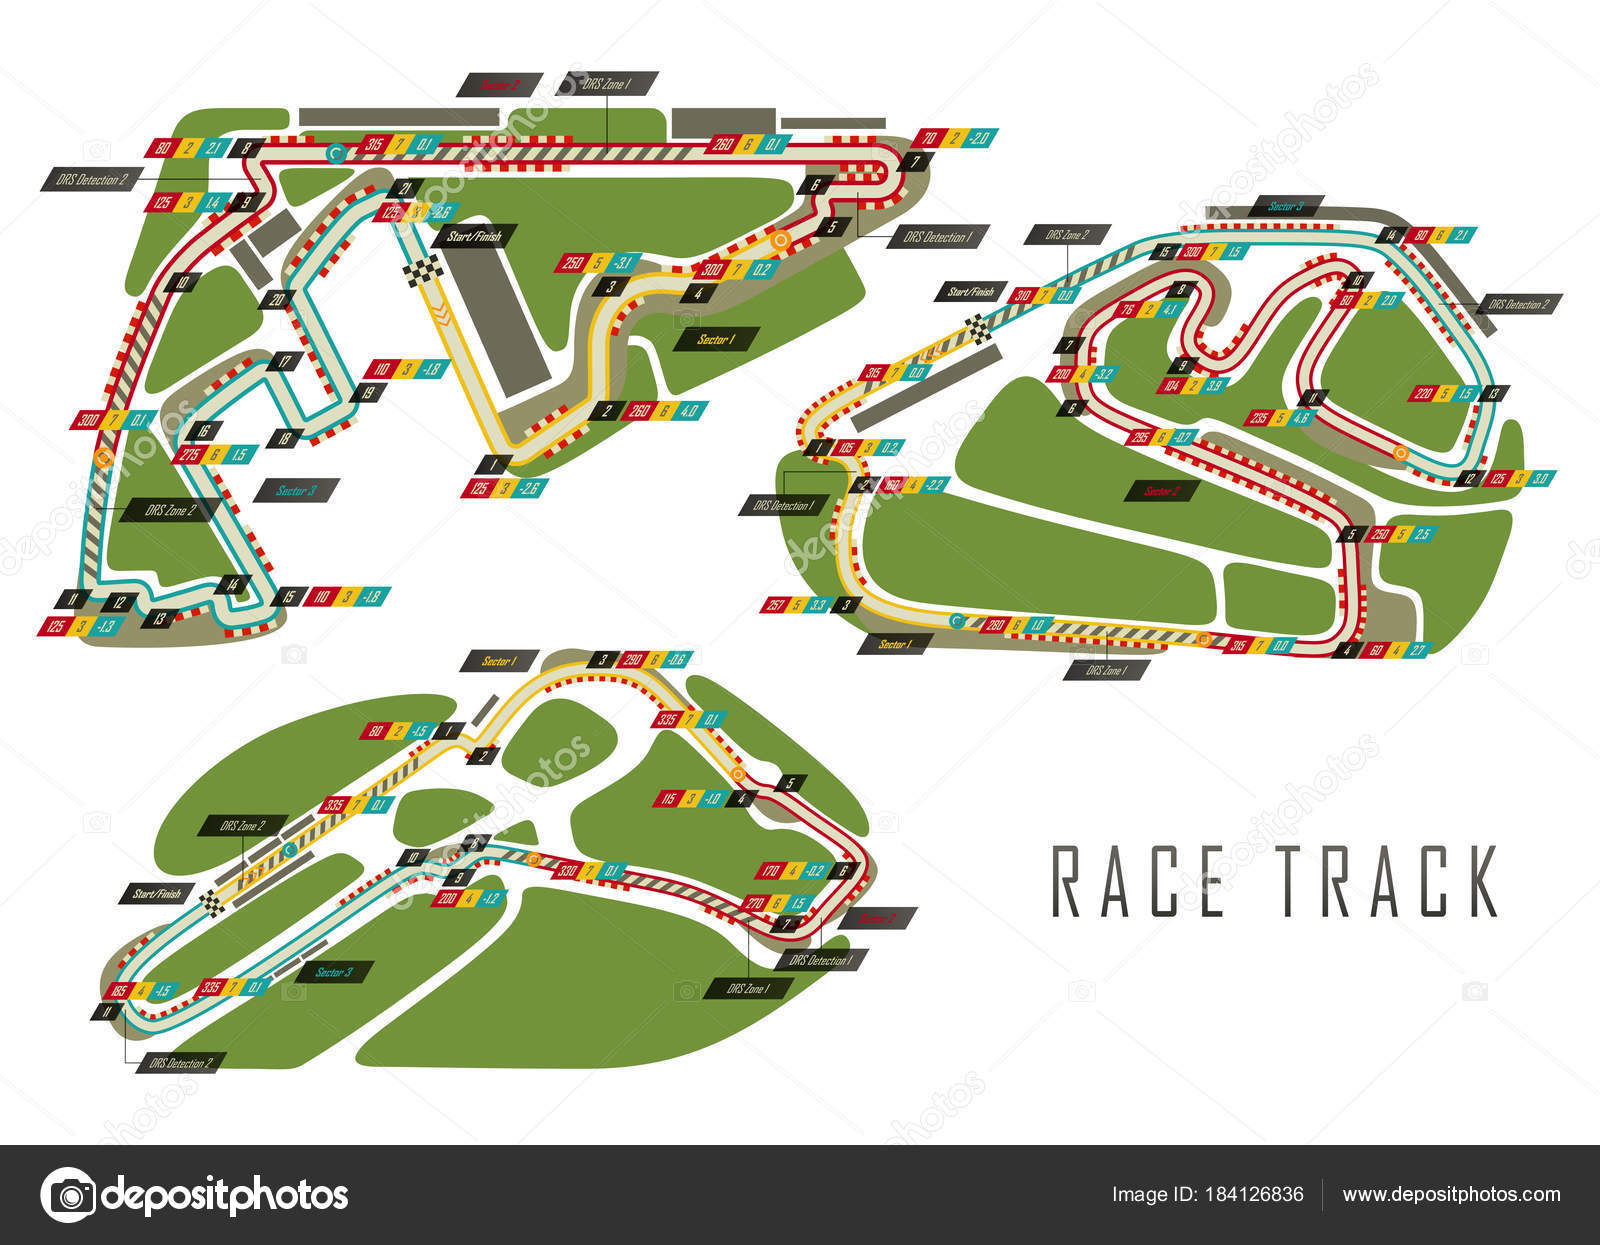 Race tracks for zil and Italy Arab Emirates — Stock Vector ... on bahram map, eclipse map, alborz map, venus map, yall map, yak map, topaz map, rising sun map,